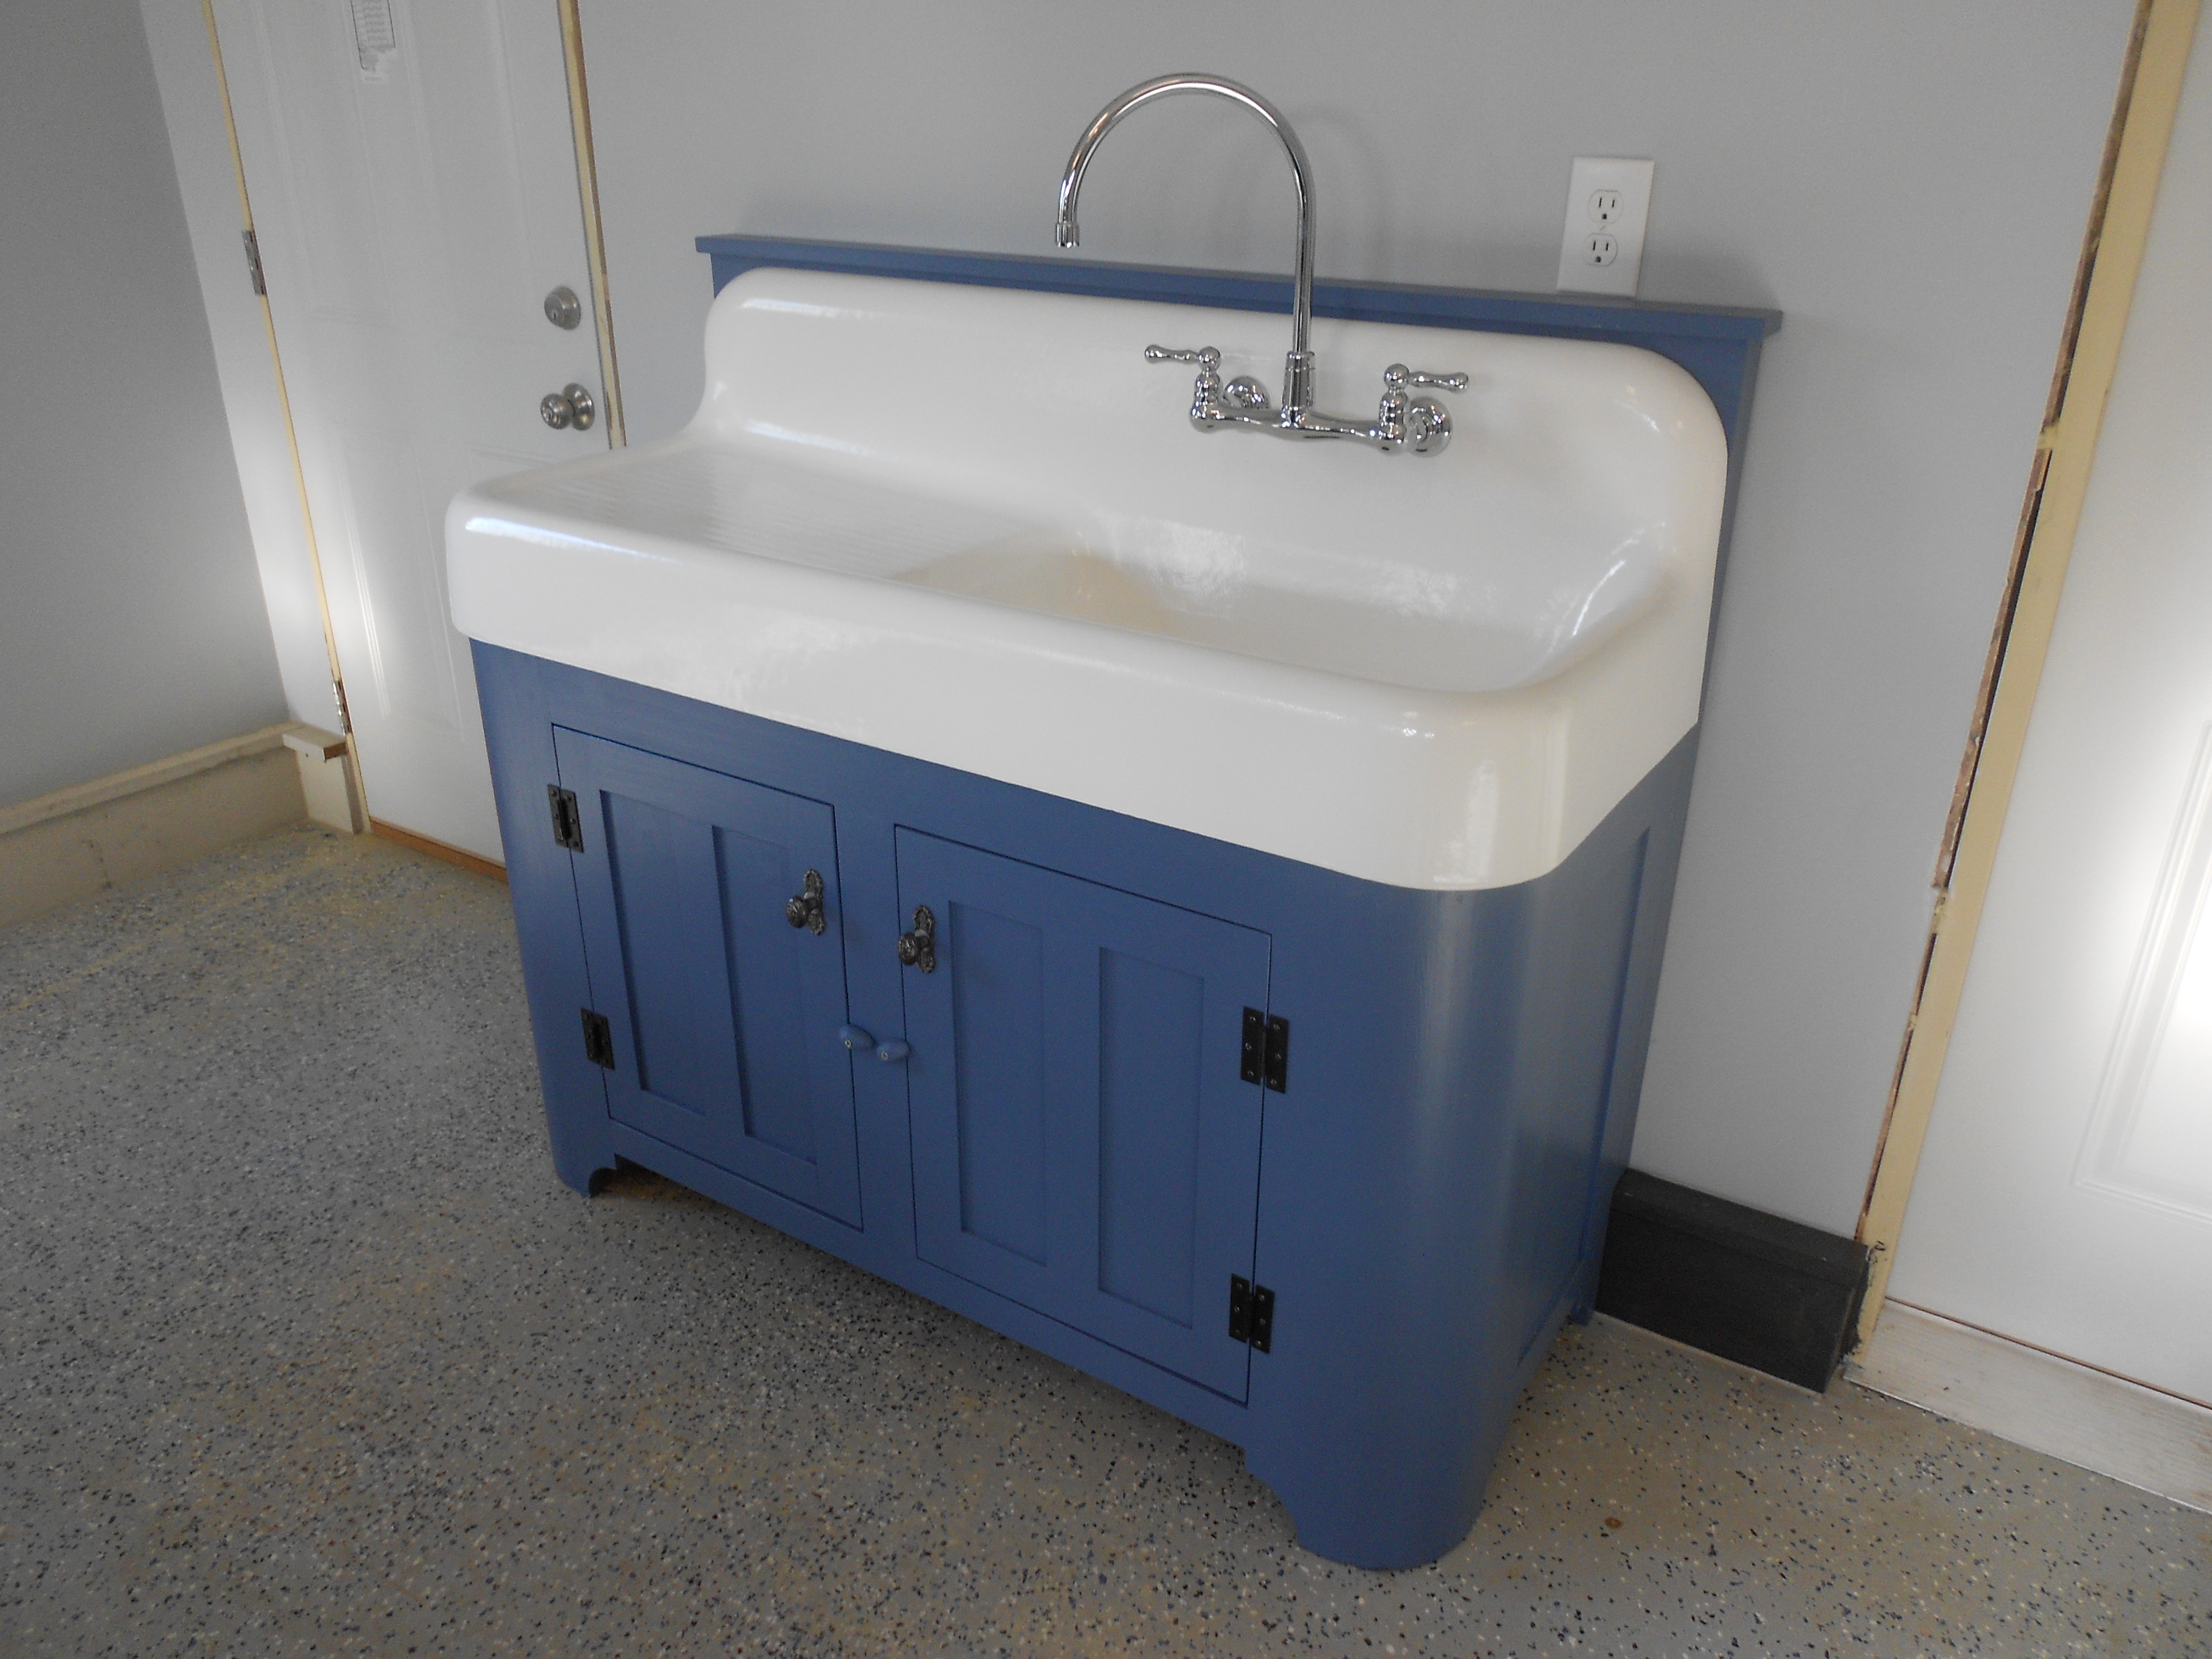 old kitchen sink with drainboard 4 hole faucets ana white cabinet round corners